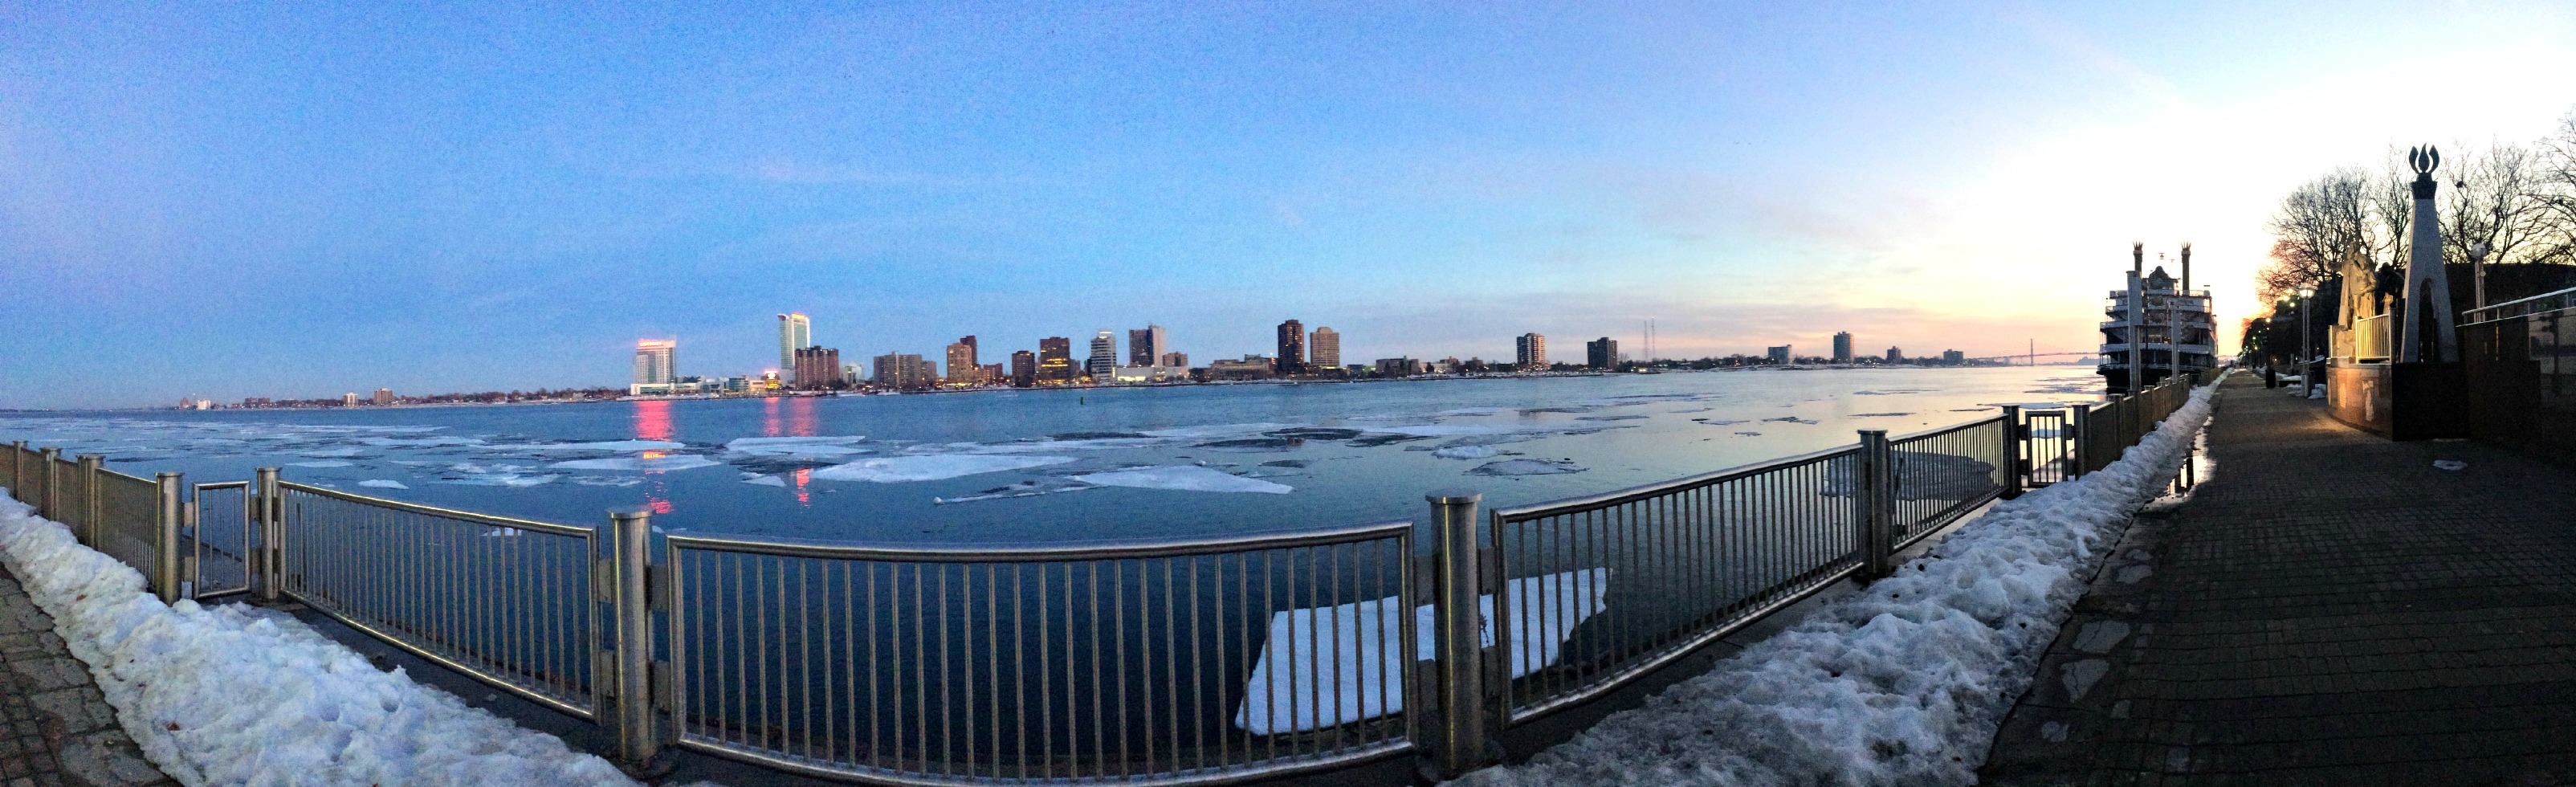 Windsor Canada Skyline from Detroit panoramic